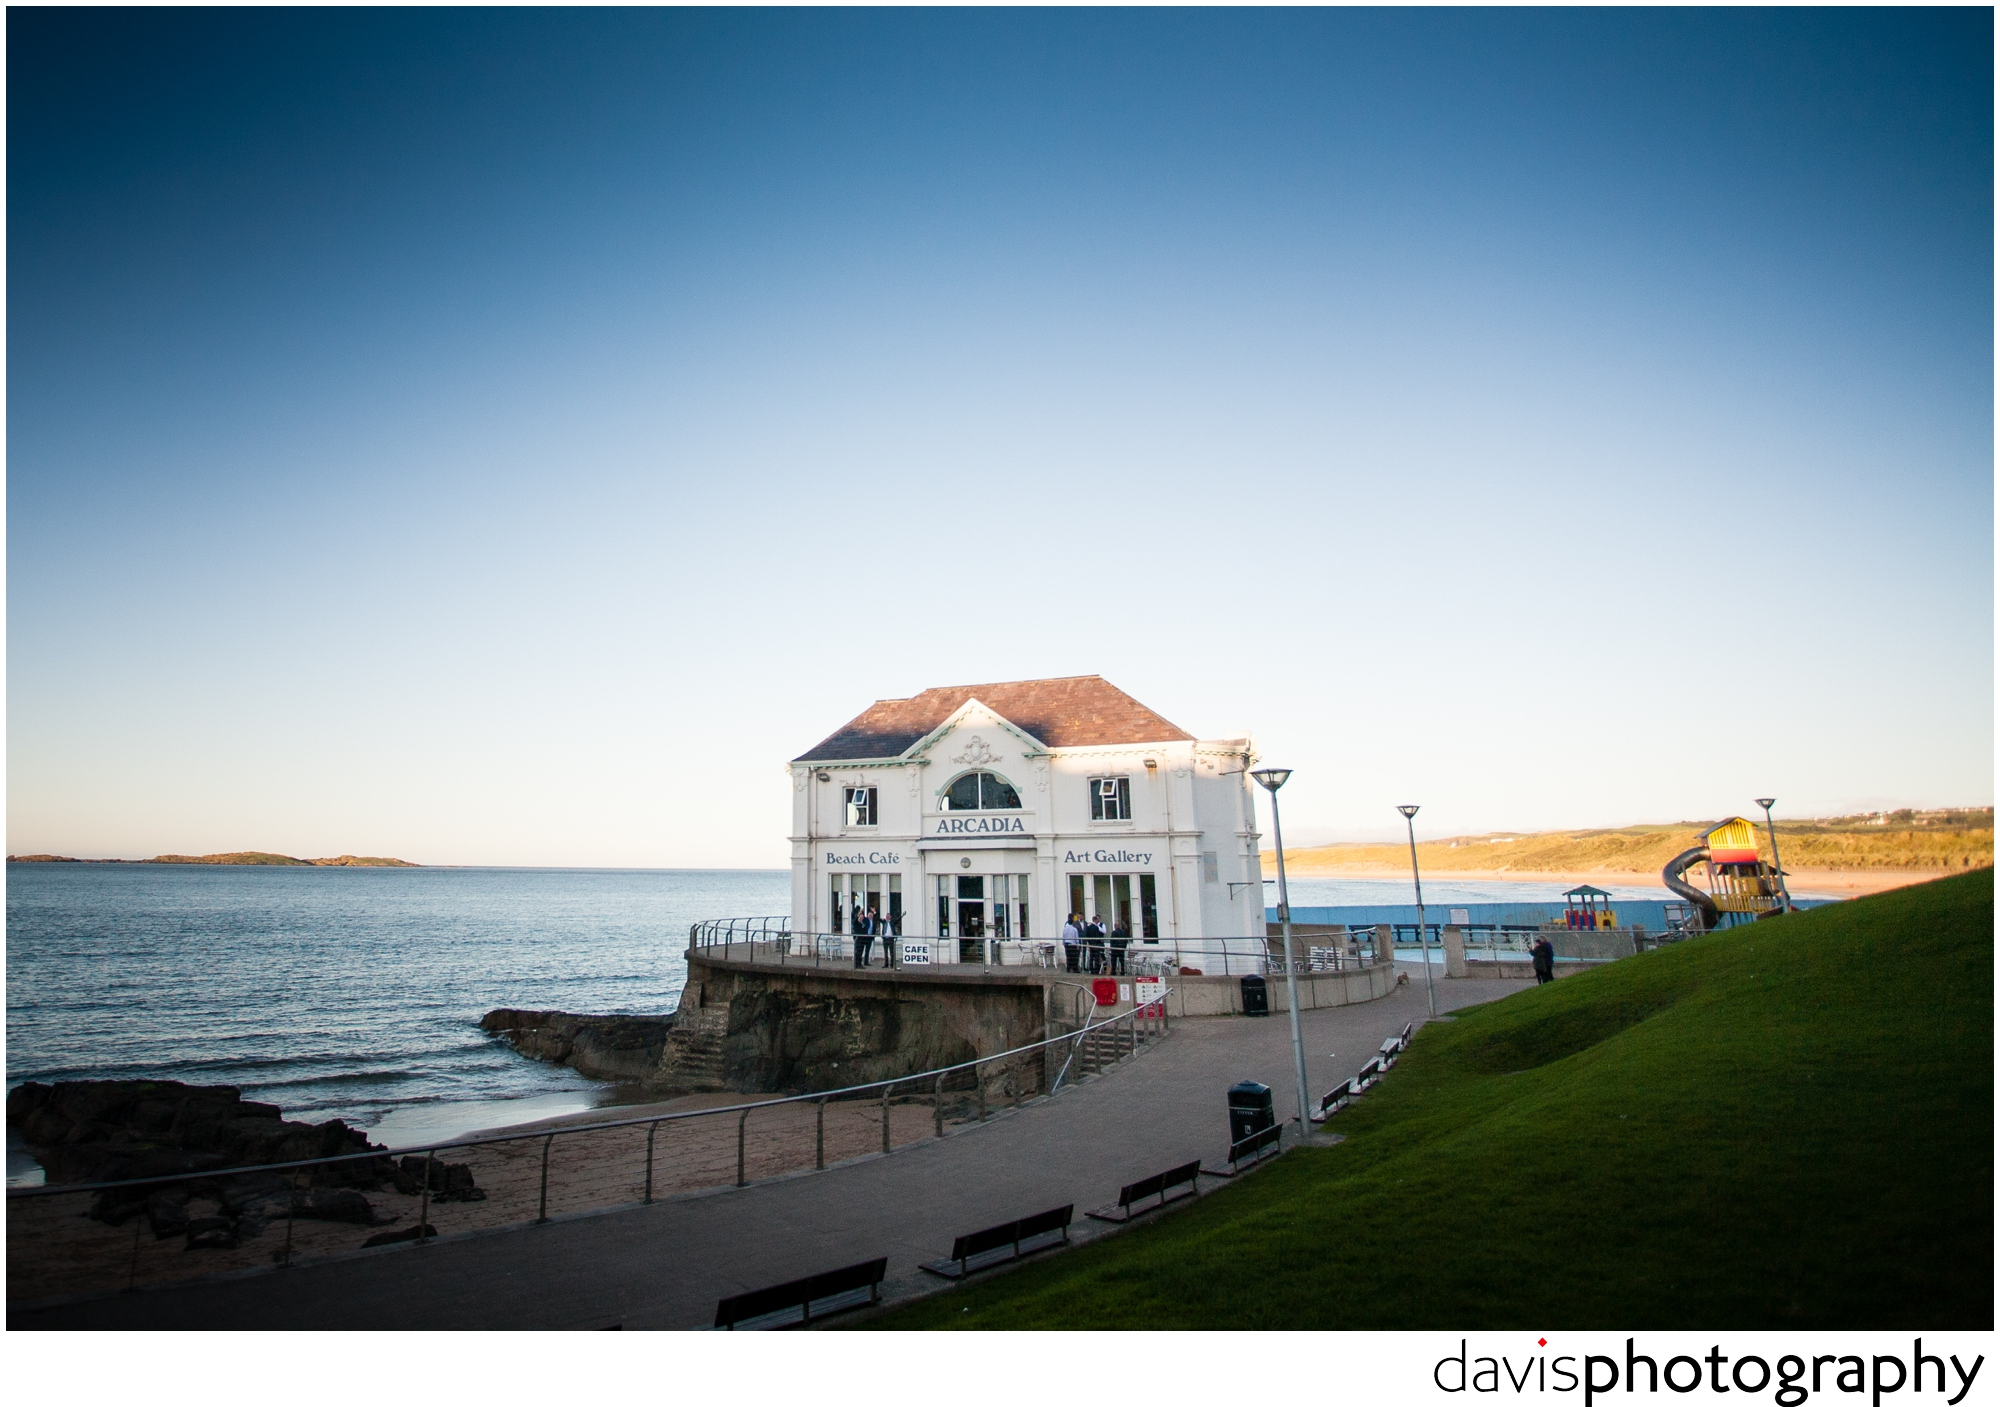 retro seaside wedding venue